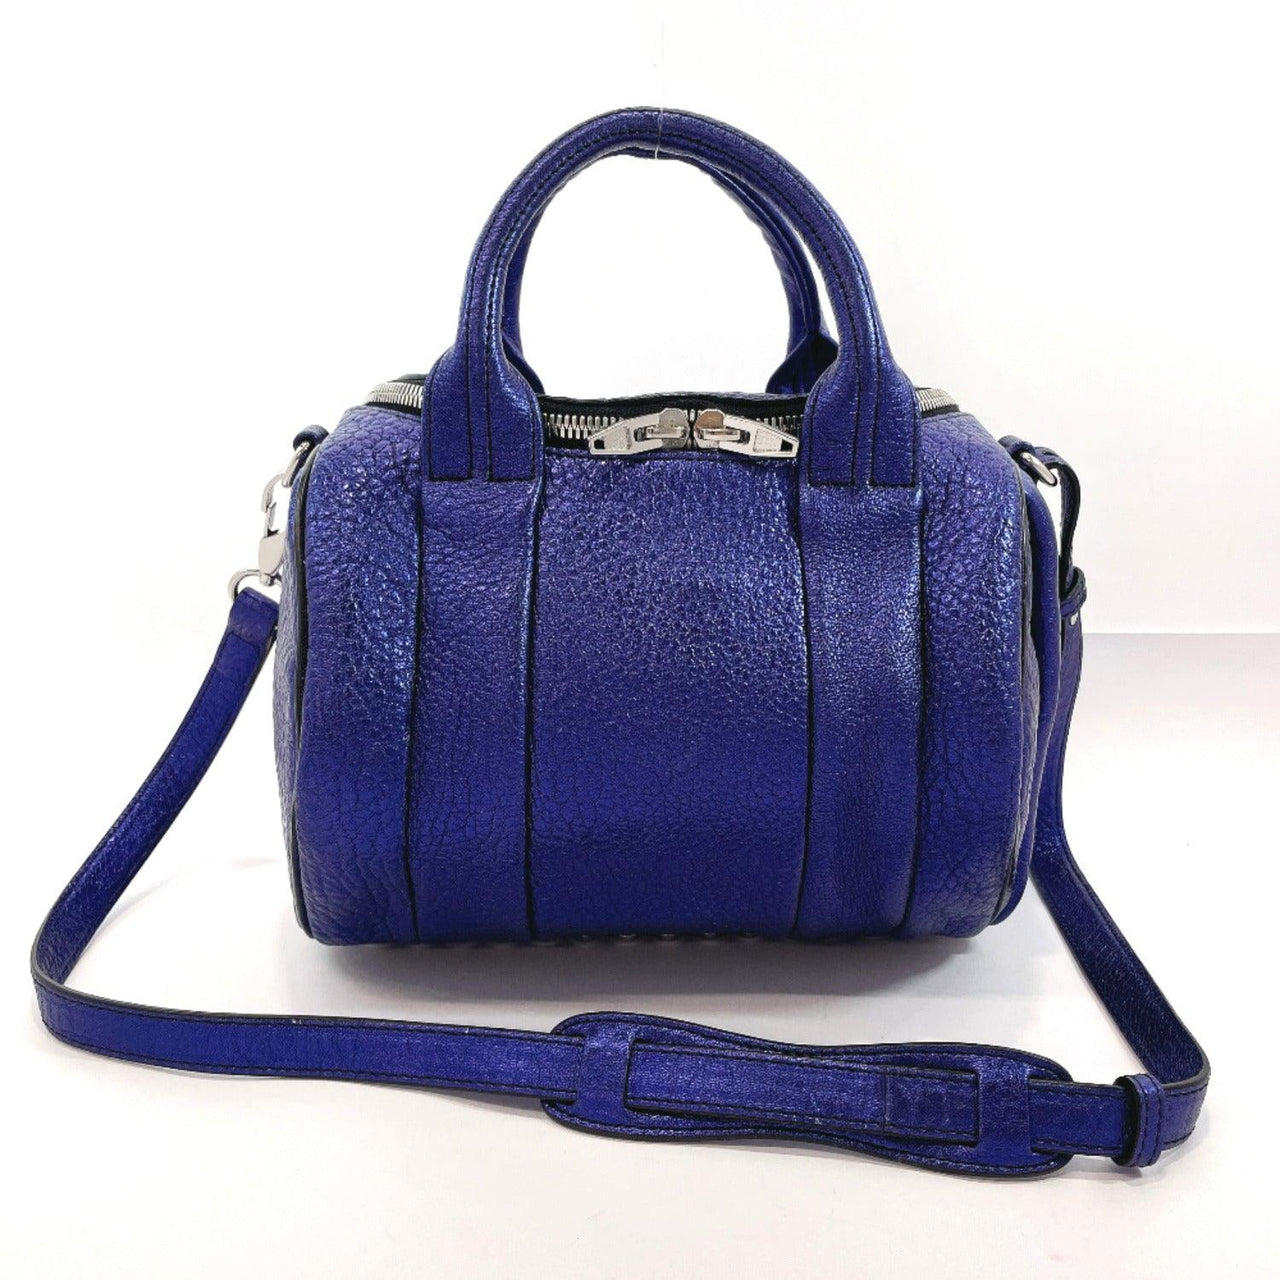 Alexander Wang Handbag Rocky 2way leather/SilverHardware blue Women Used